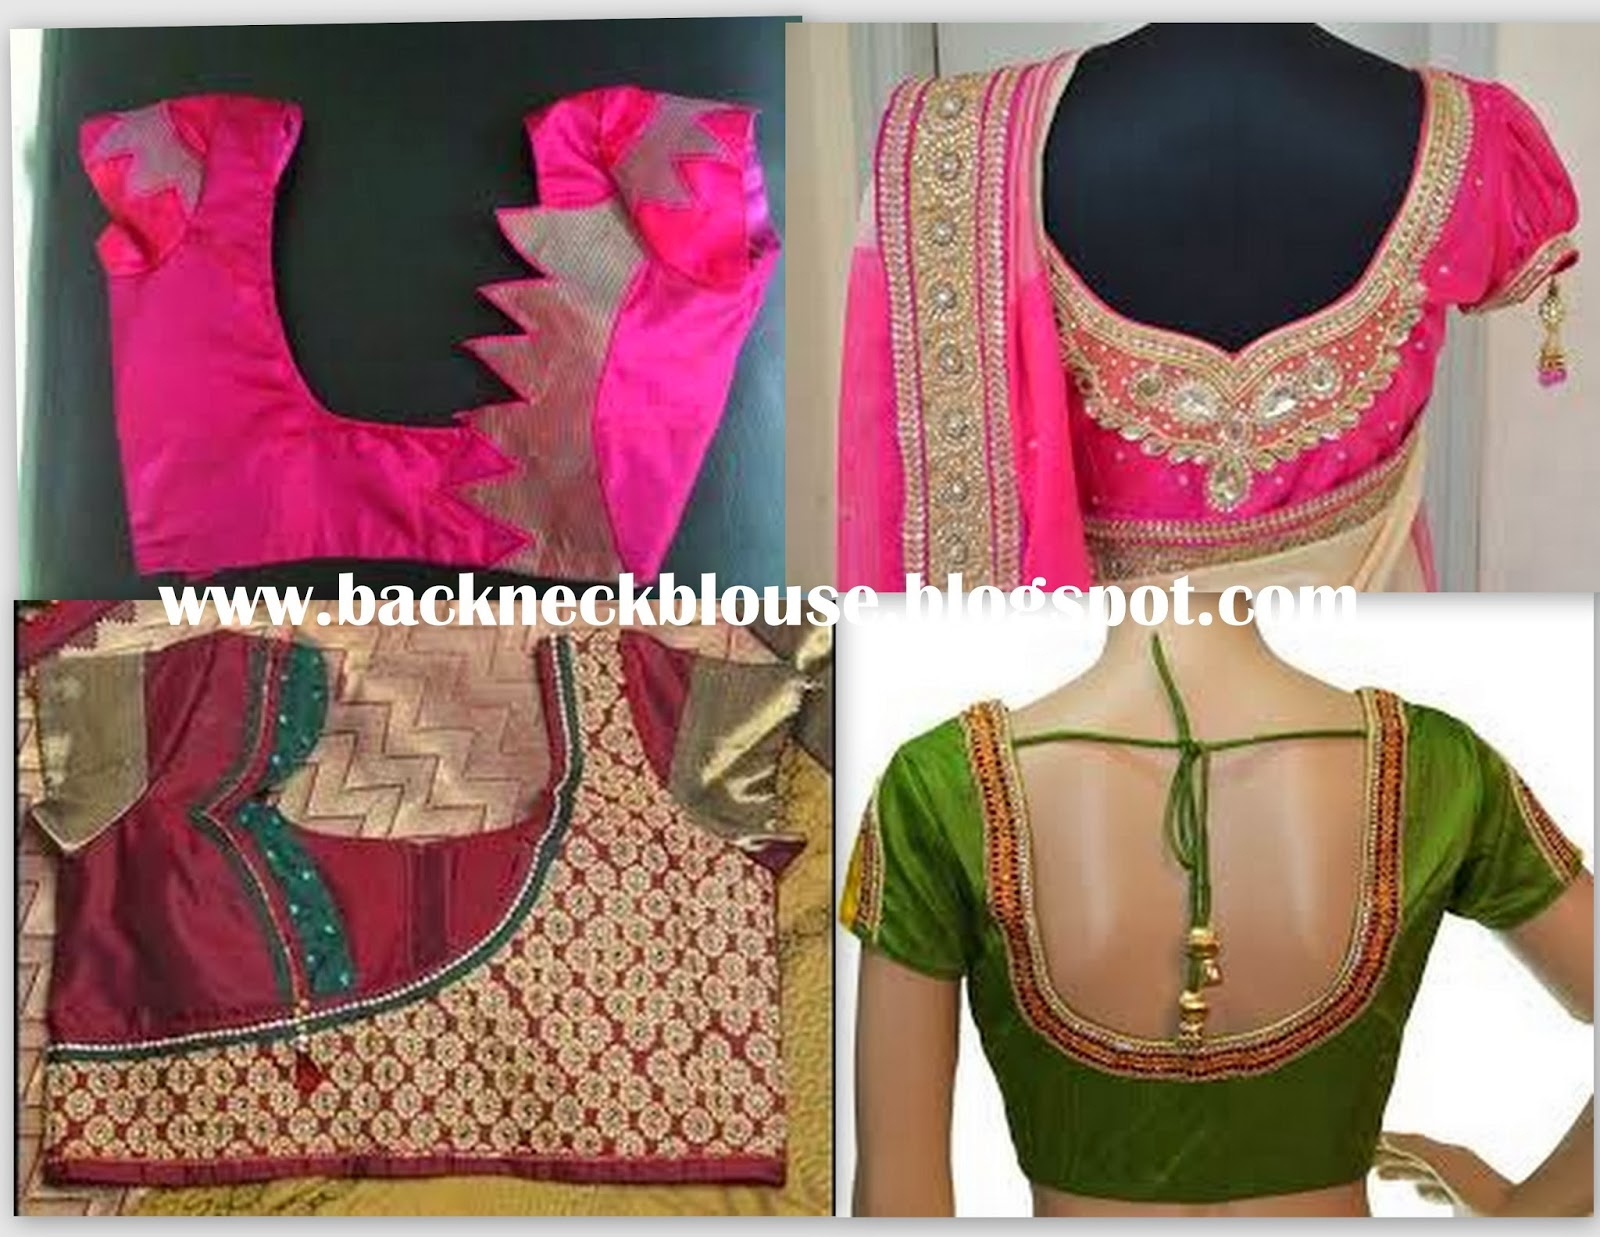 Back Neck Blouse Ready Made And Customized Designer Blouse With Blouse Designs Catalogue New